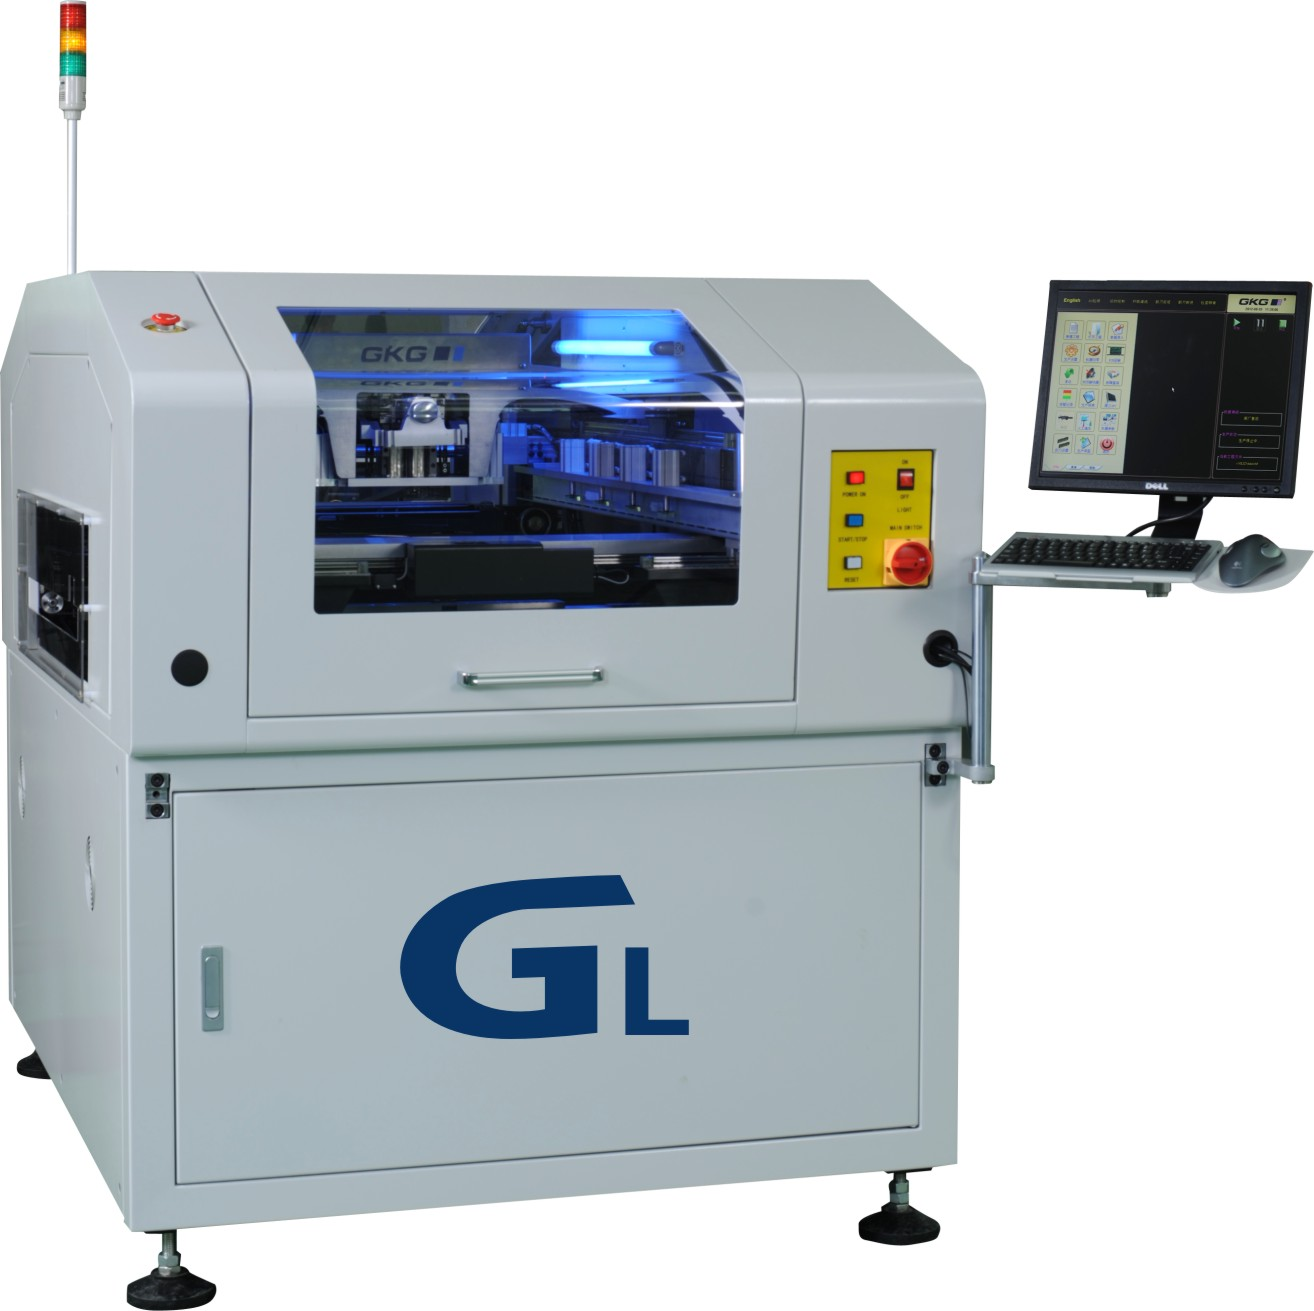 D Printing Exhibition Germany : Gkg asia announces a successful productronica exhibition